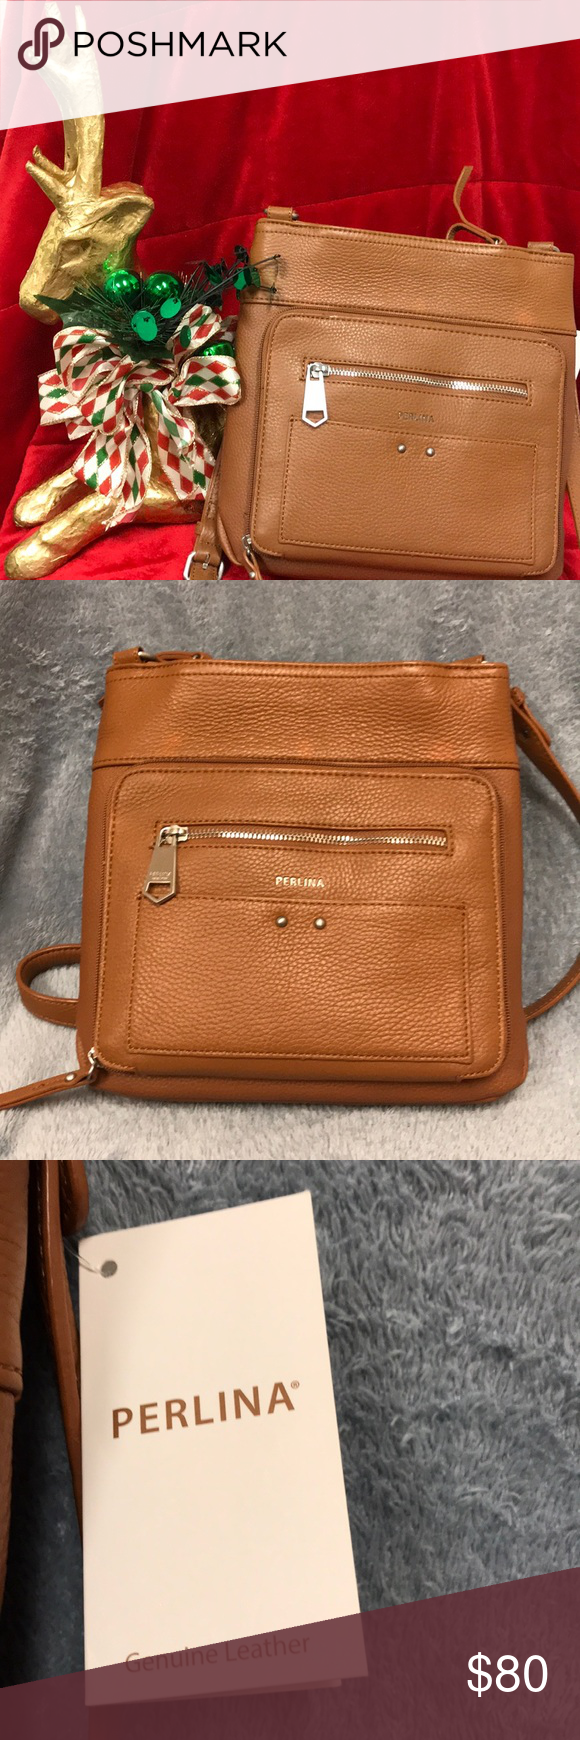 Nwt Genuine Leather Perlina New York Crossbody Ny Bag Style Is Clare Passport Measures 11x11x3 5